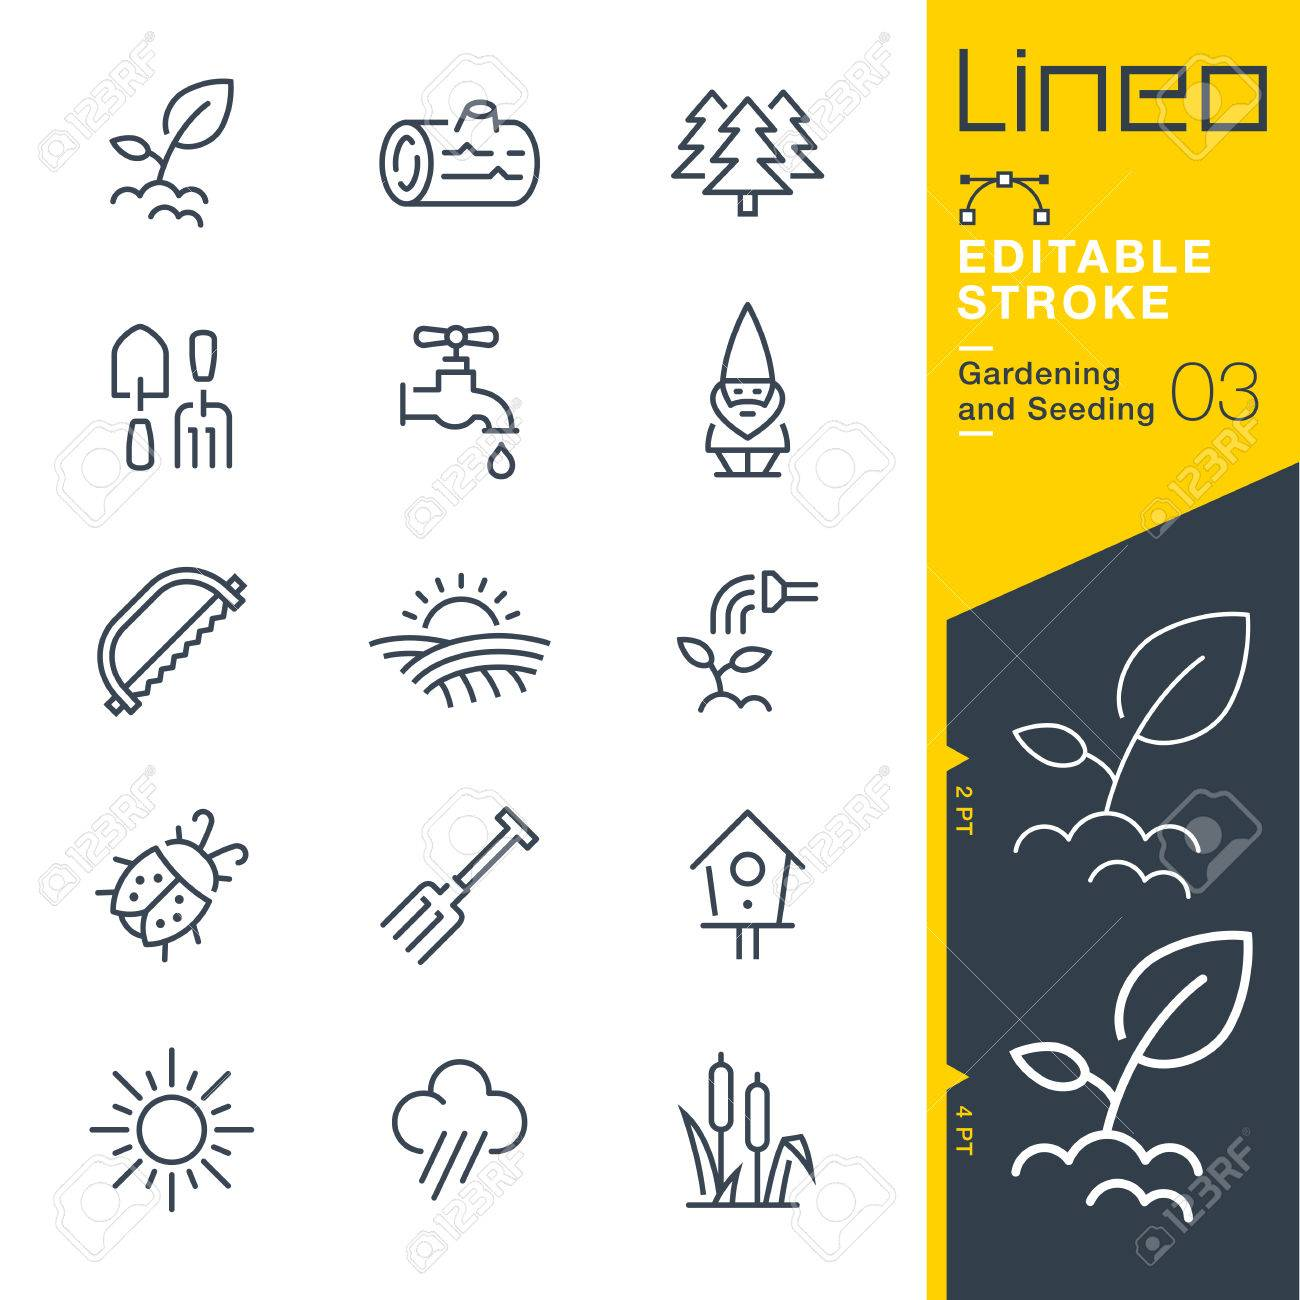 Lineo Editable Stroke - Gardening and Seeding line Vector icons - Adjust stroke weight - Change to any color - 79734020